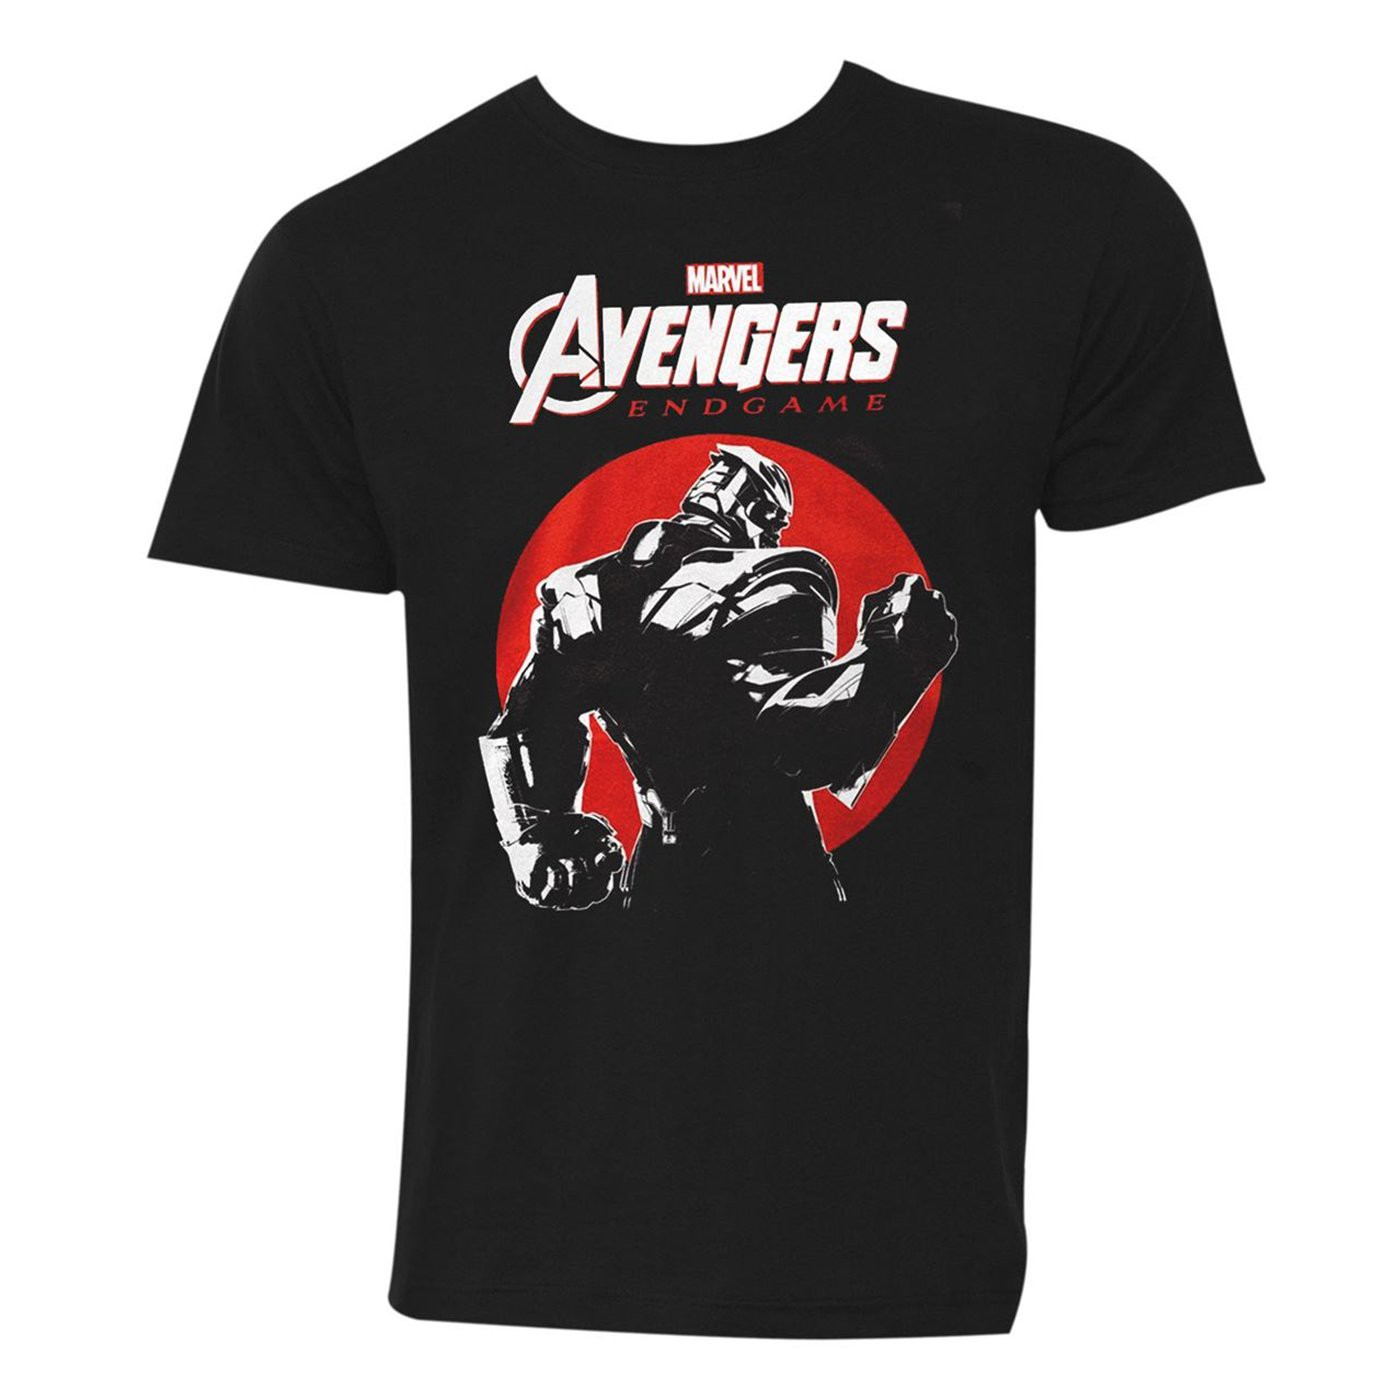 Avengers Endgame Thanos Sunset Men's T-Shirt